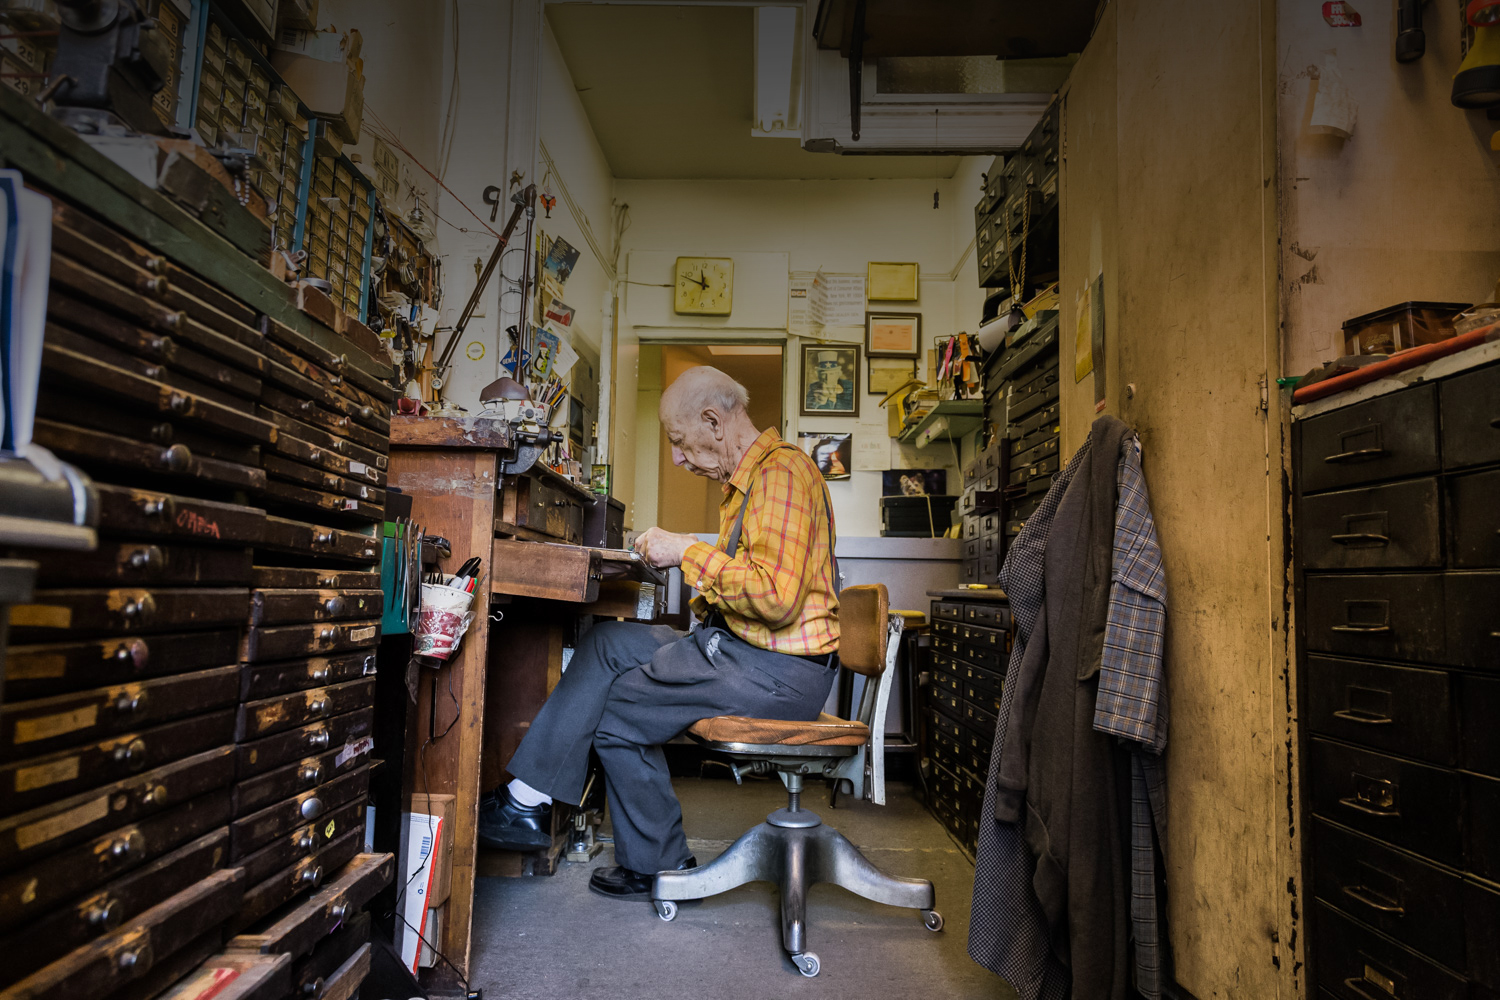 Where time stands still: Inside an 89-year-old watch repairman's NYC shop...